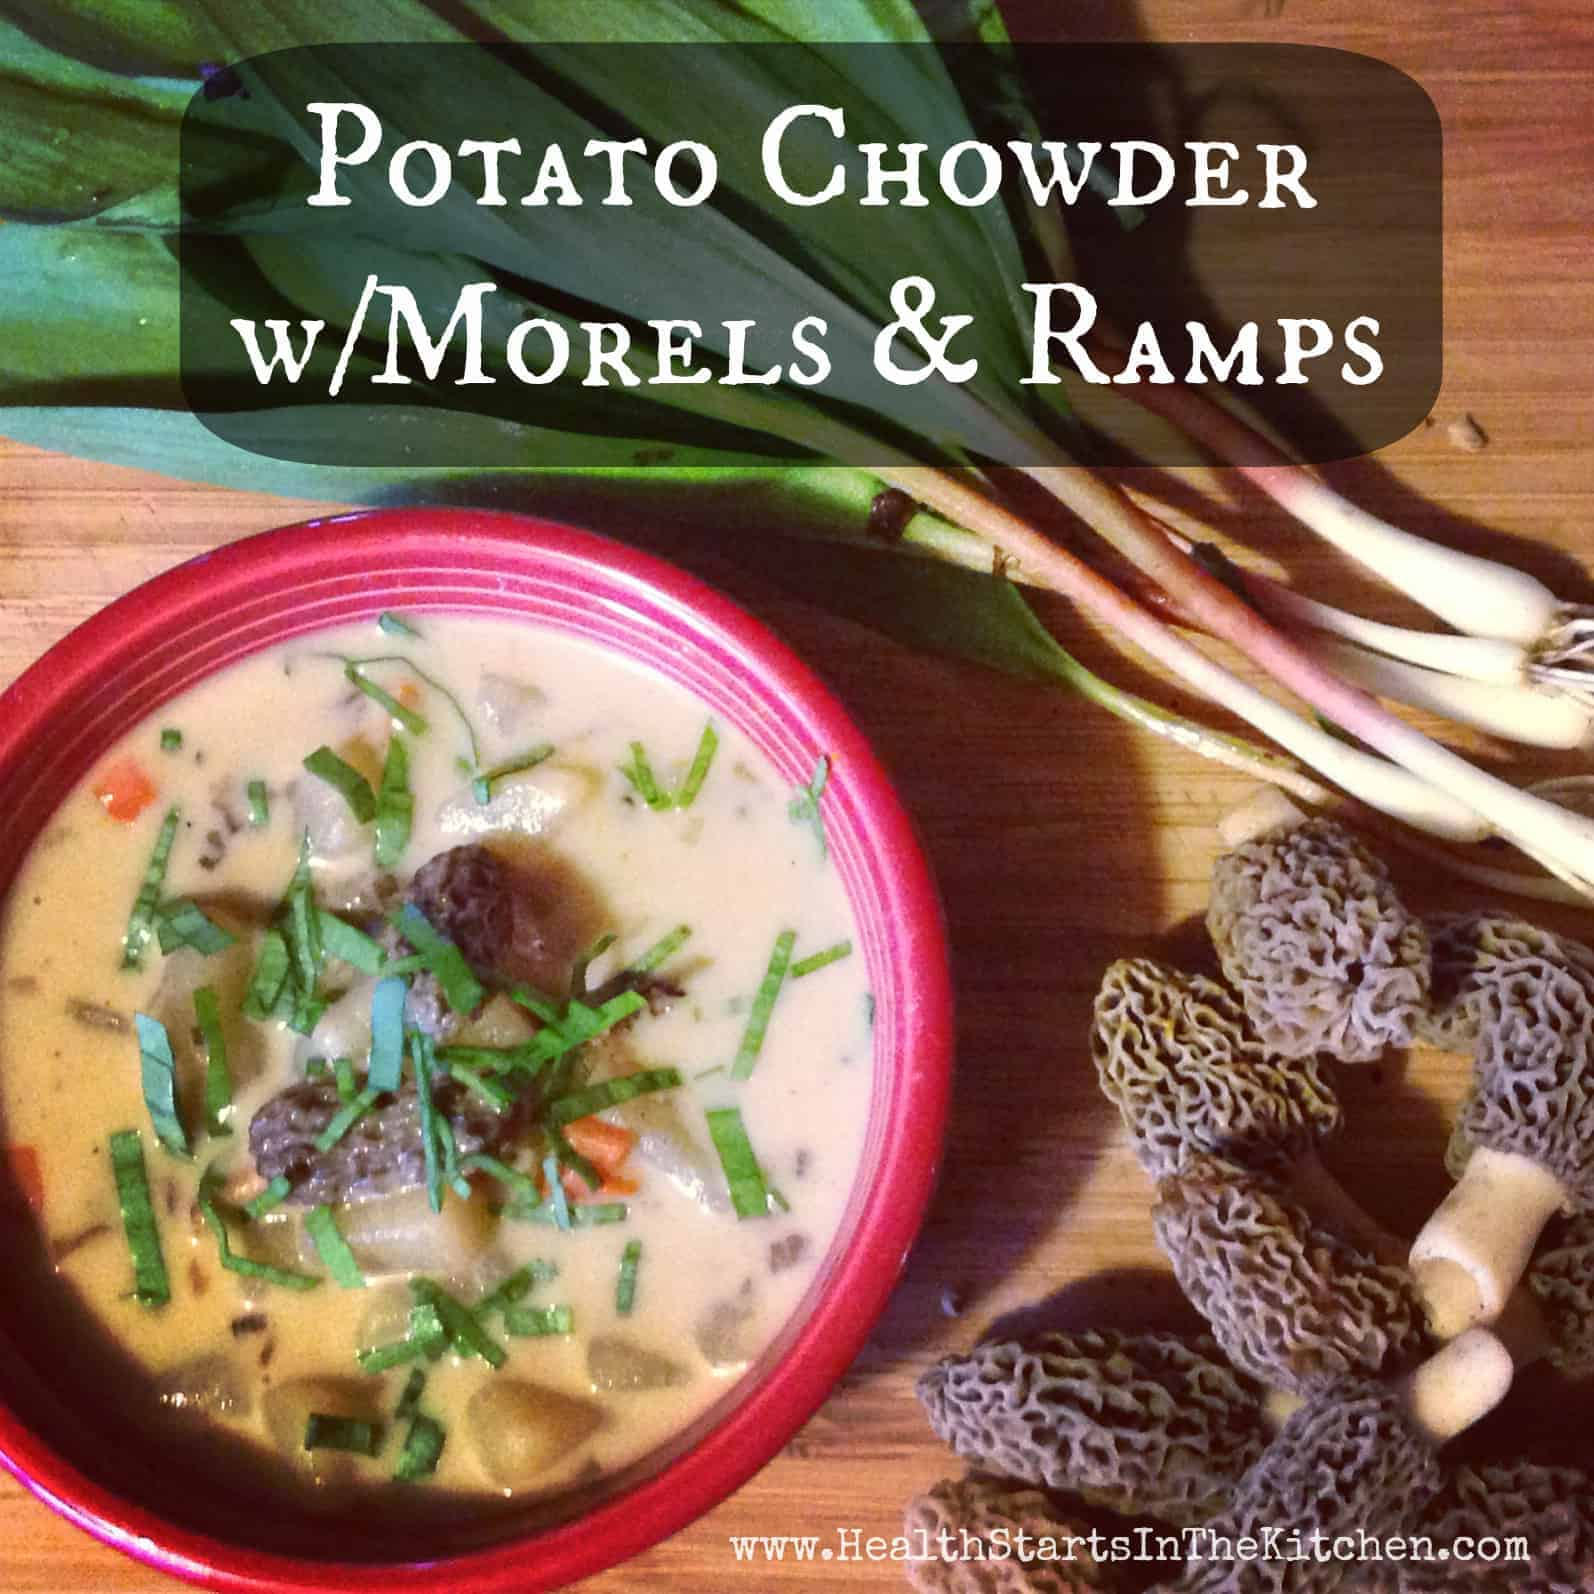 Potato Chowder with Morels and Ramps